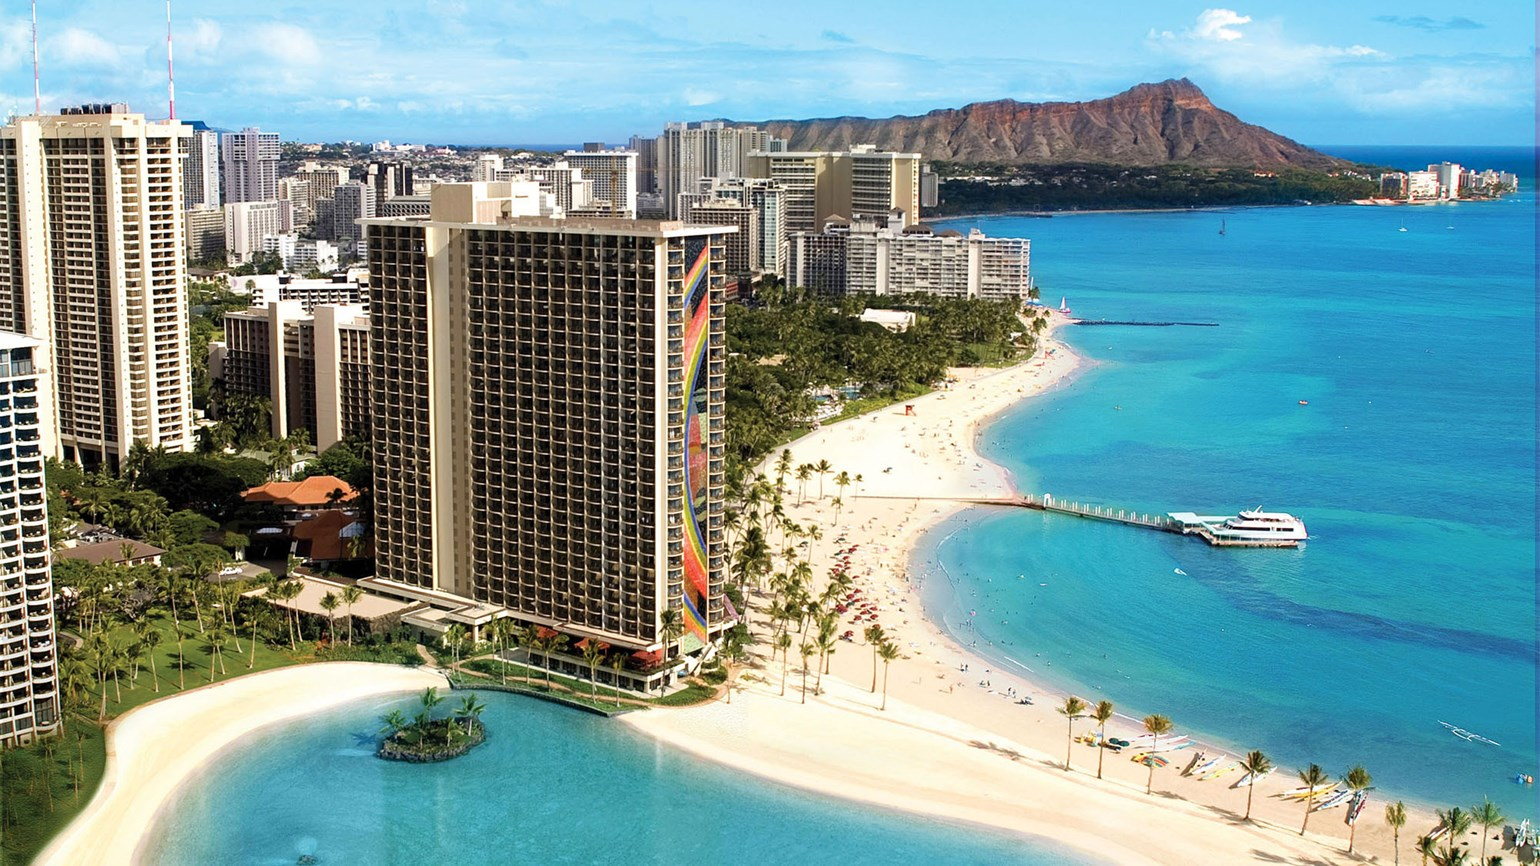 Hilton Hawaiian Village renews partnership with 'Hawaii Five-0'